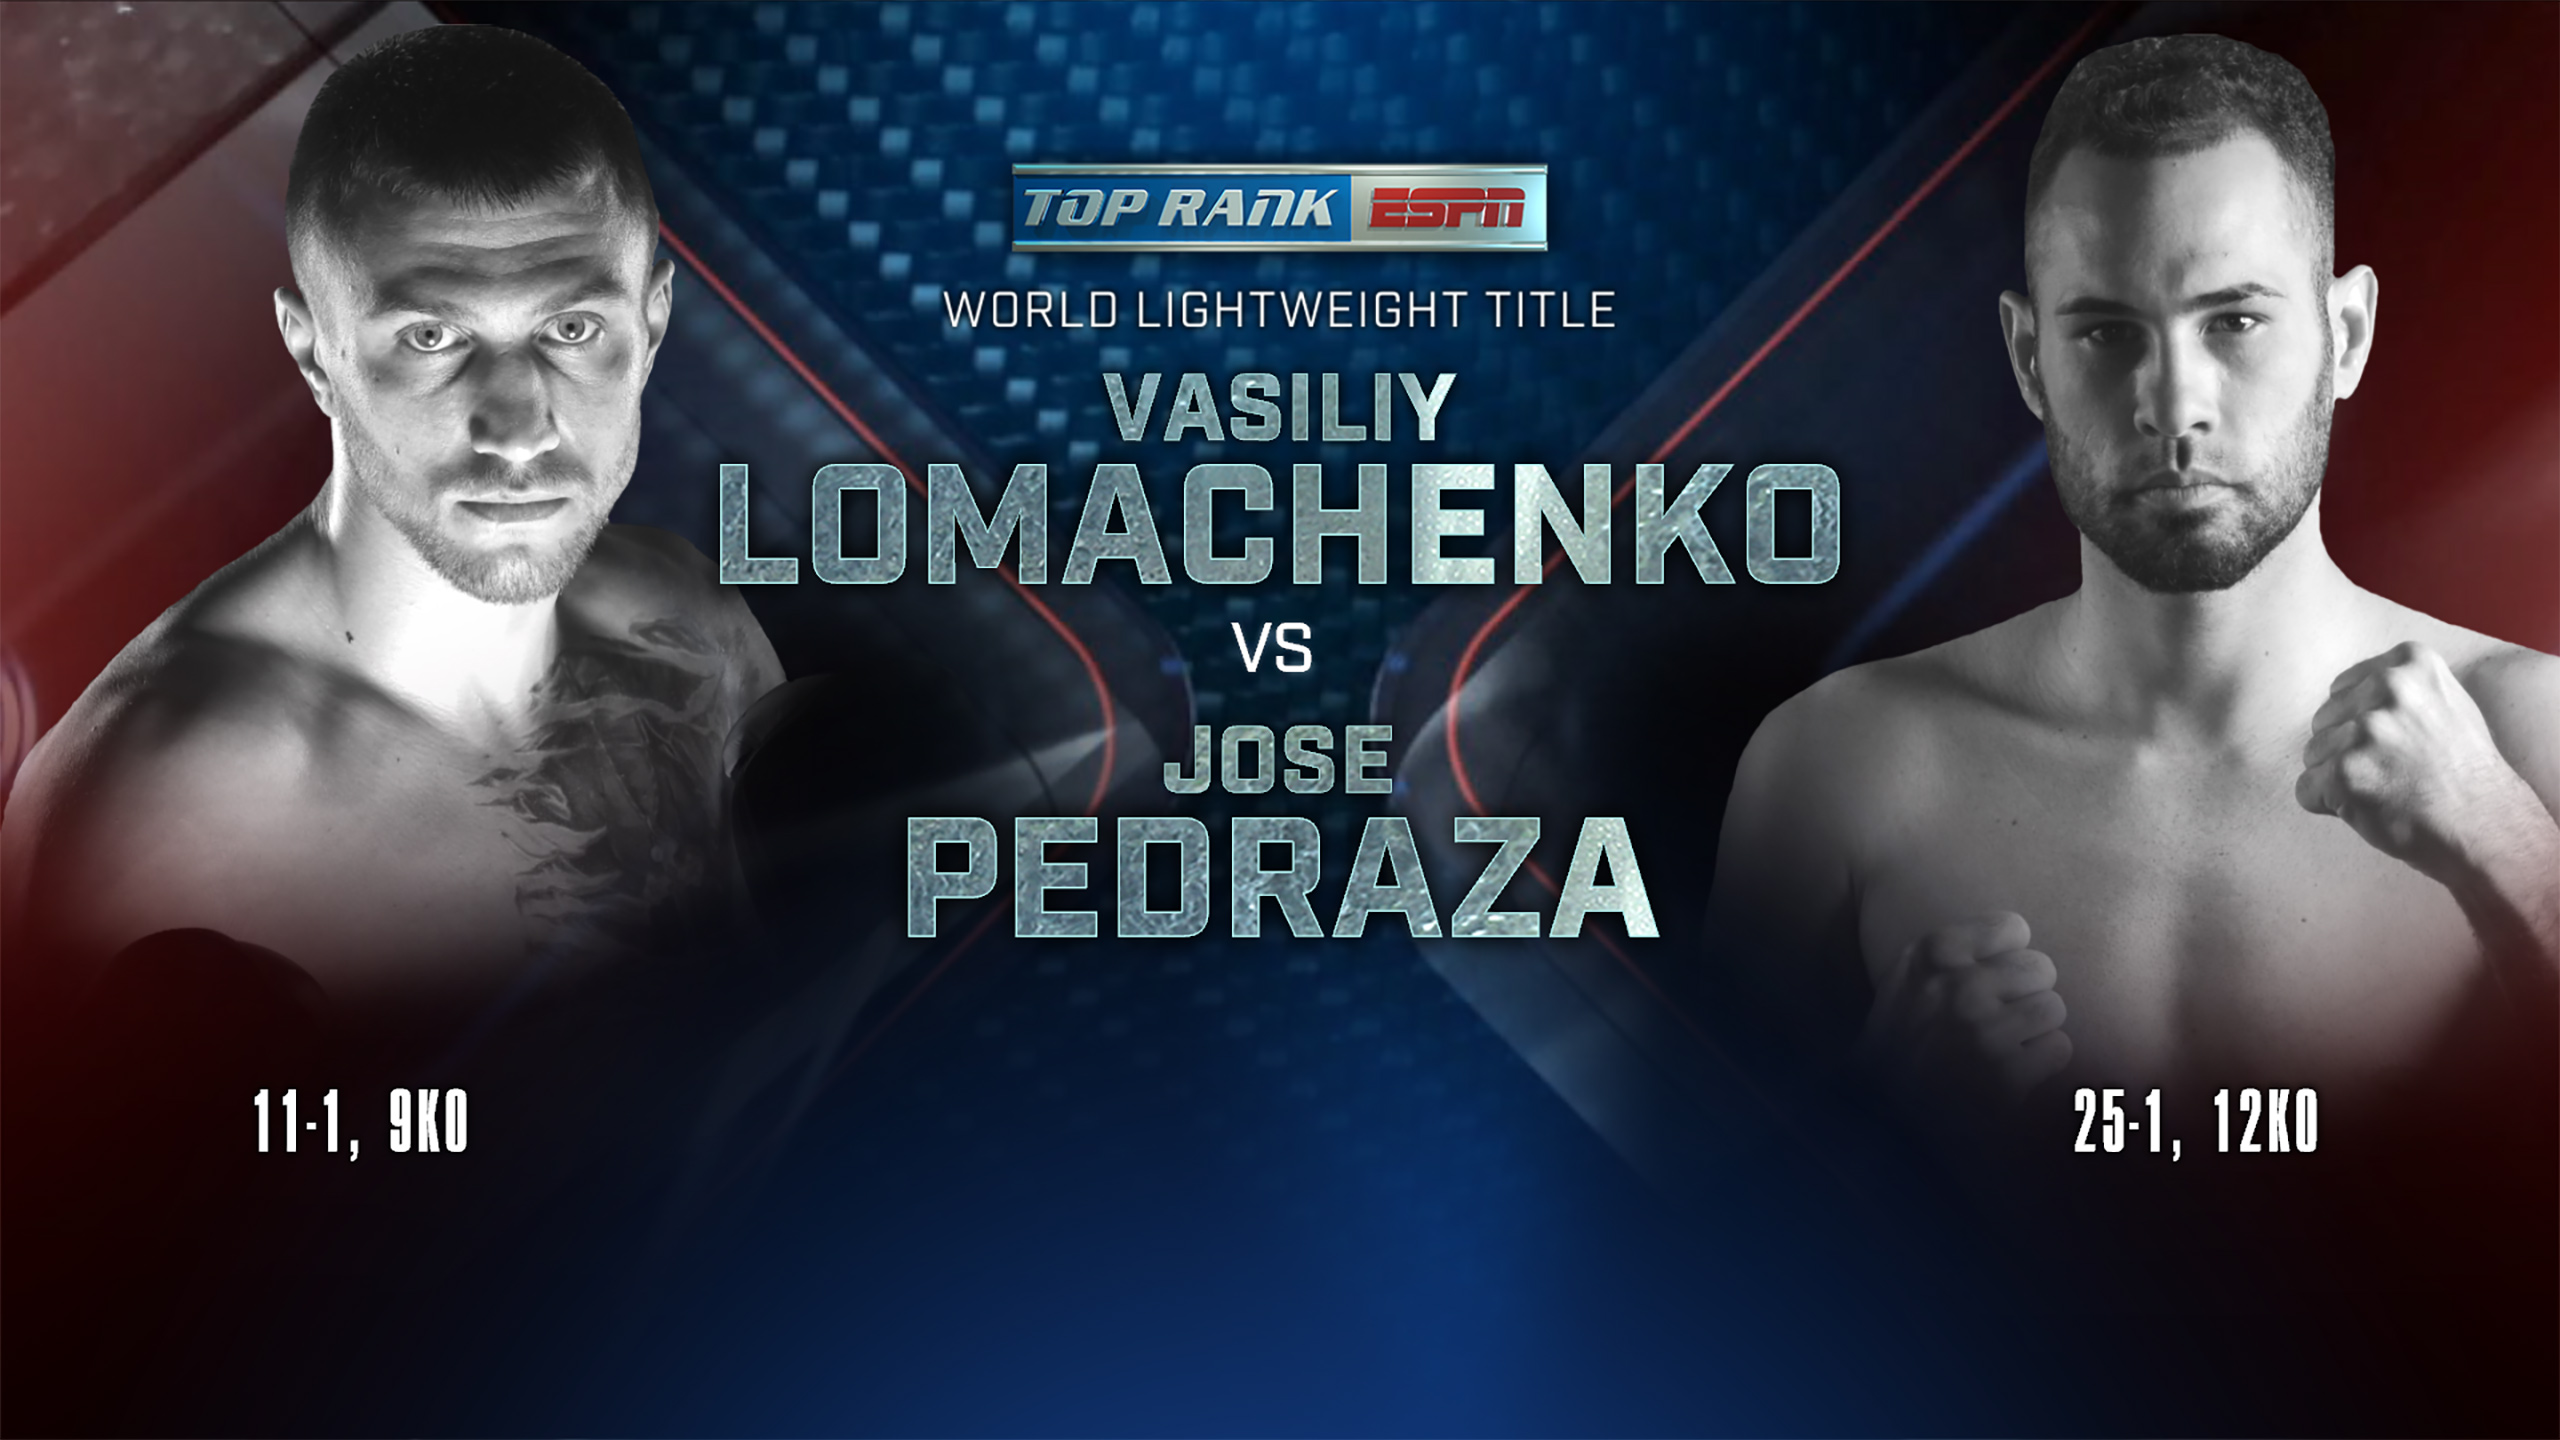 In Spanish - Vasiliy Lomachenko vs. Jose Pedraza